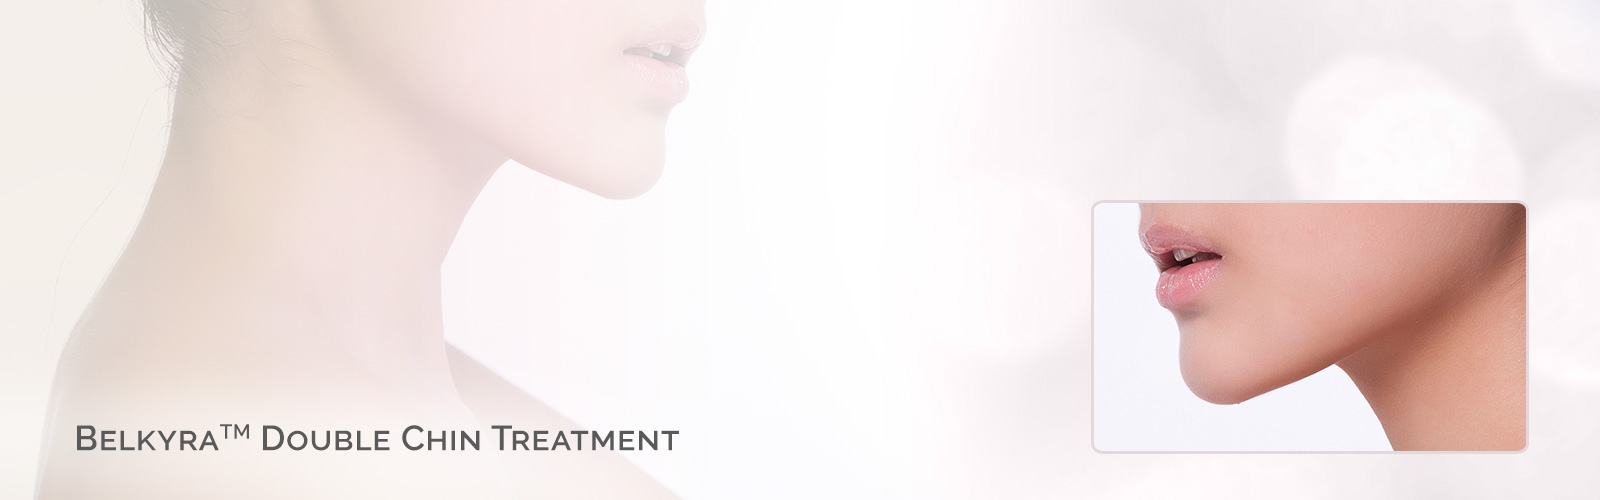 Belkyra™ Double Chin Treatment